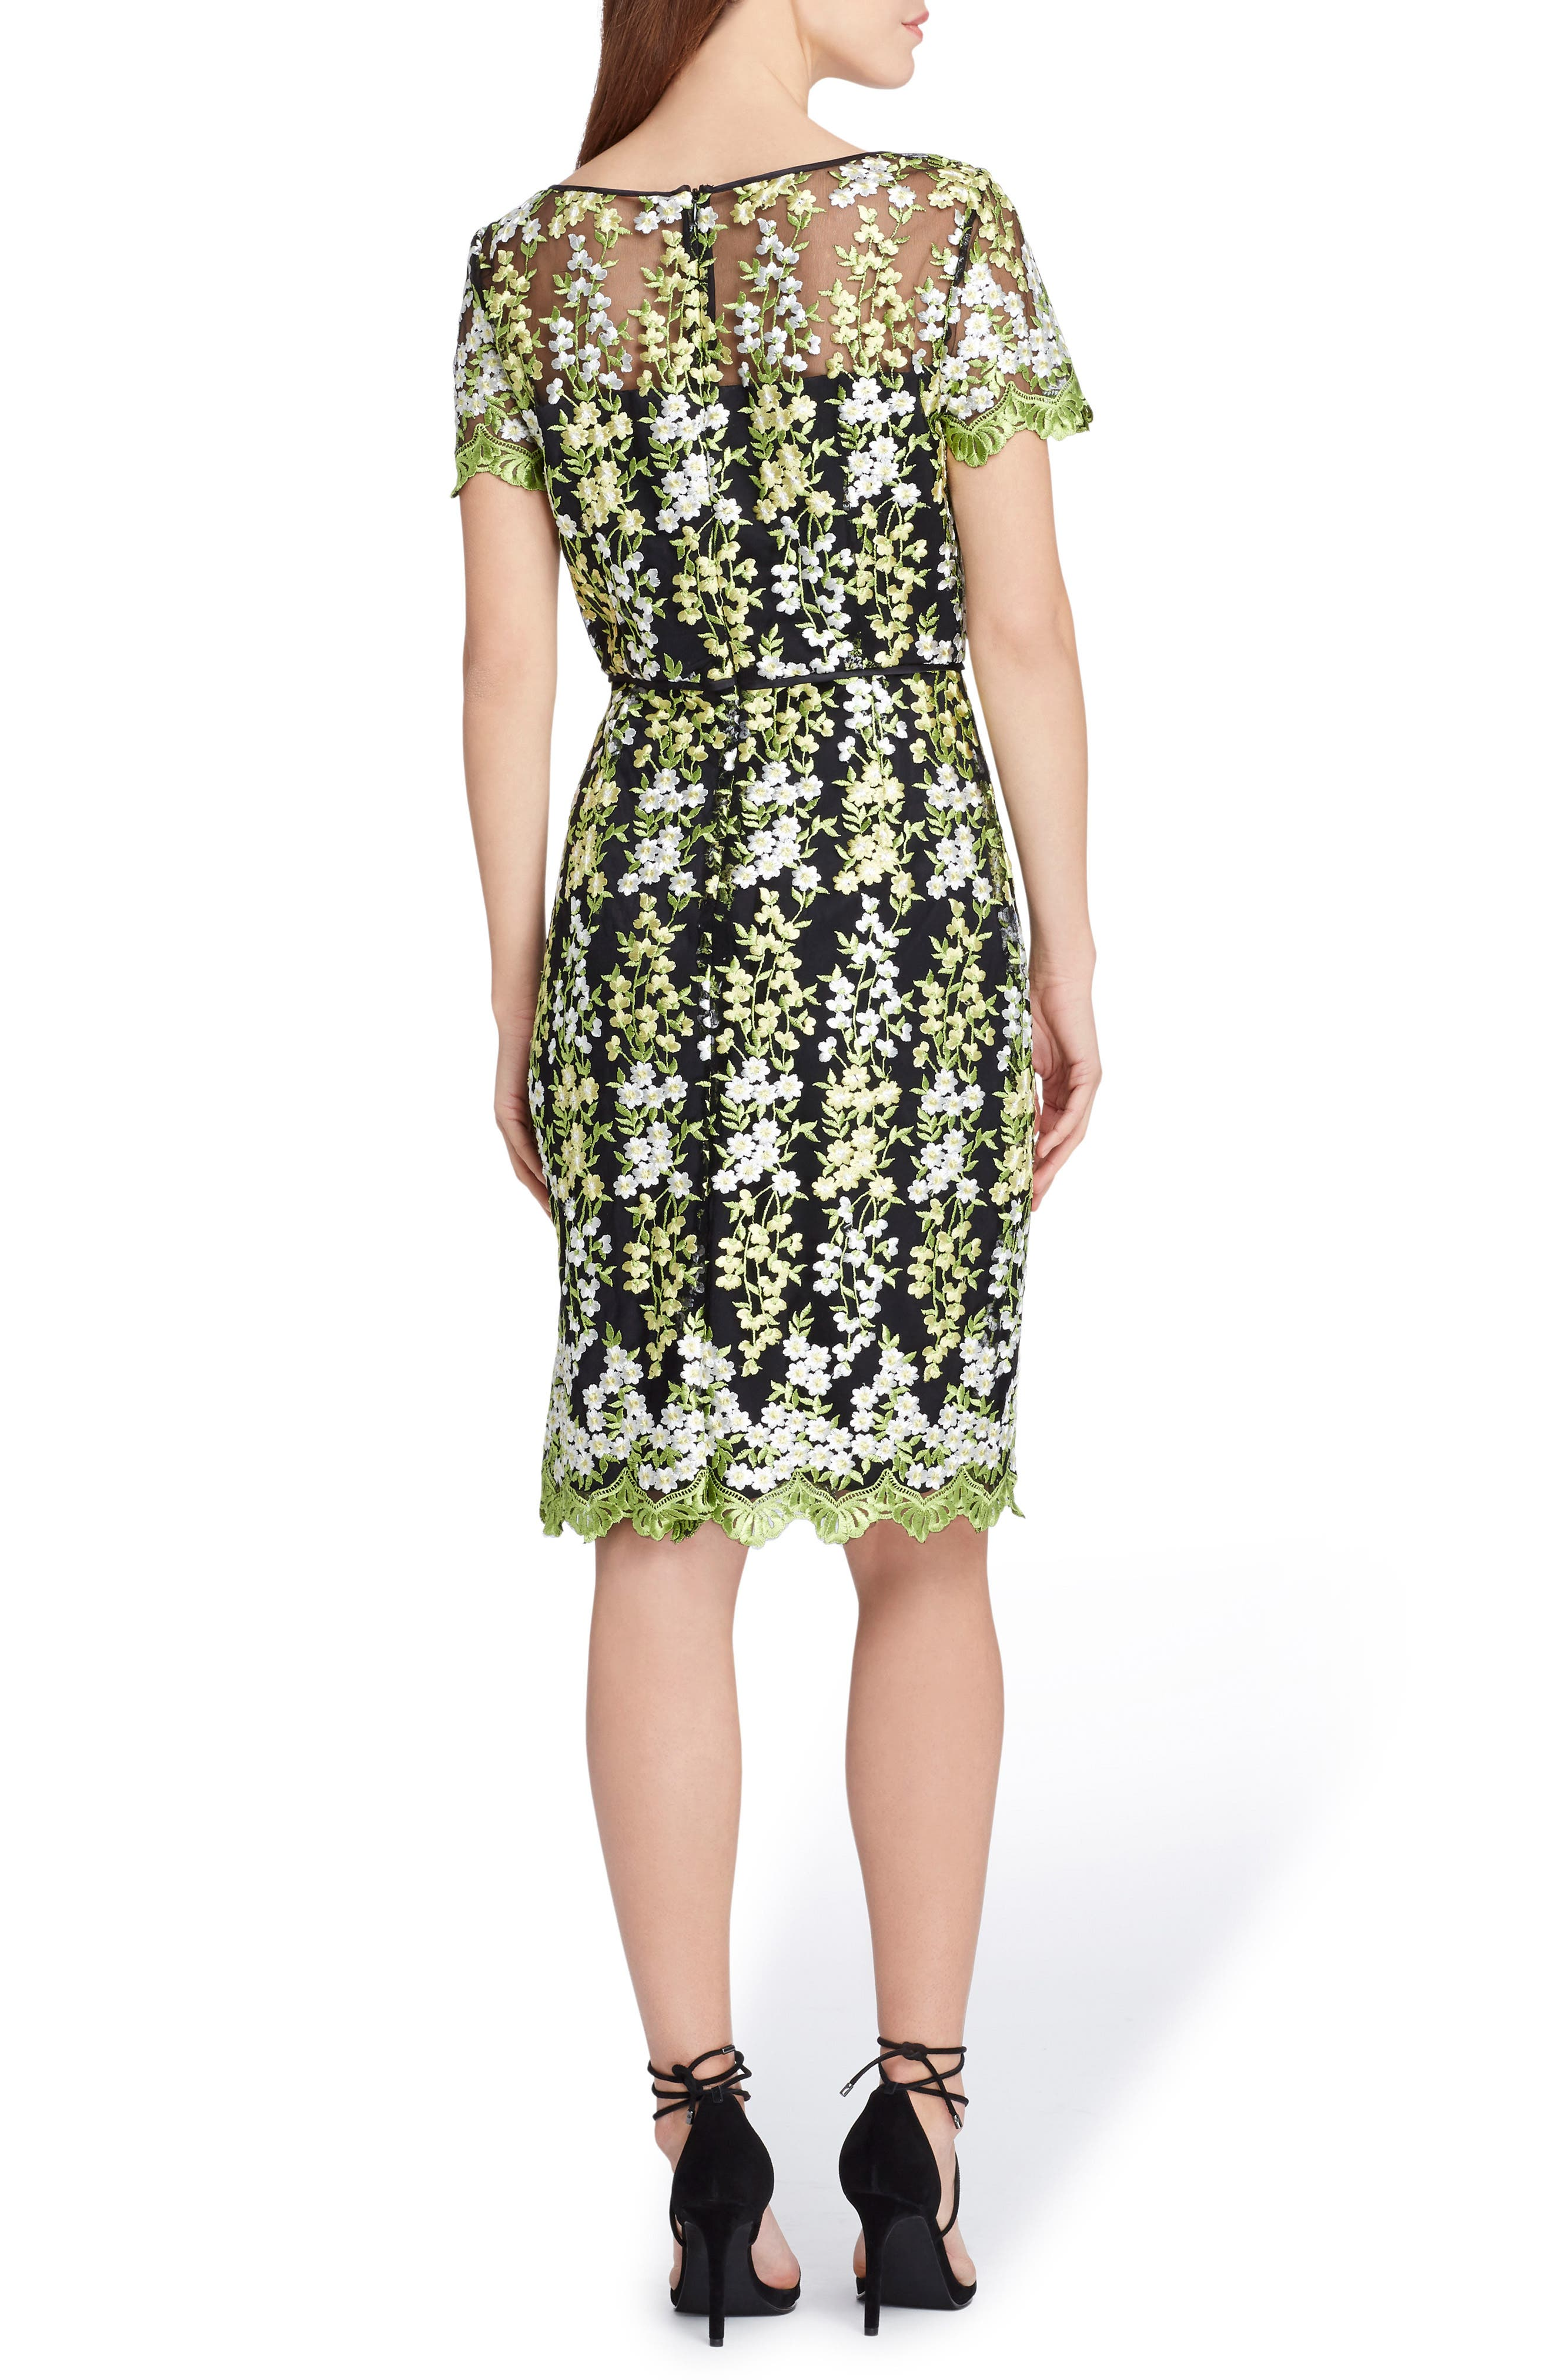 Floral Embroidery Sheath Dress,                             Alternate thumbnail 2, color,                             378